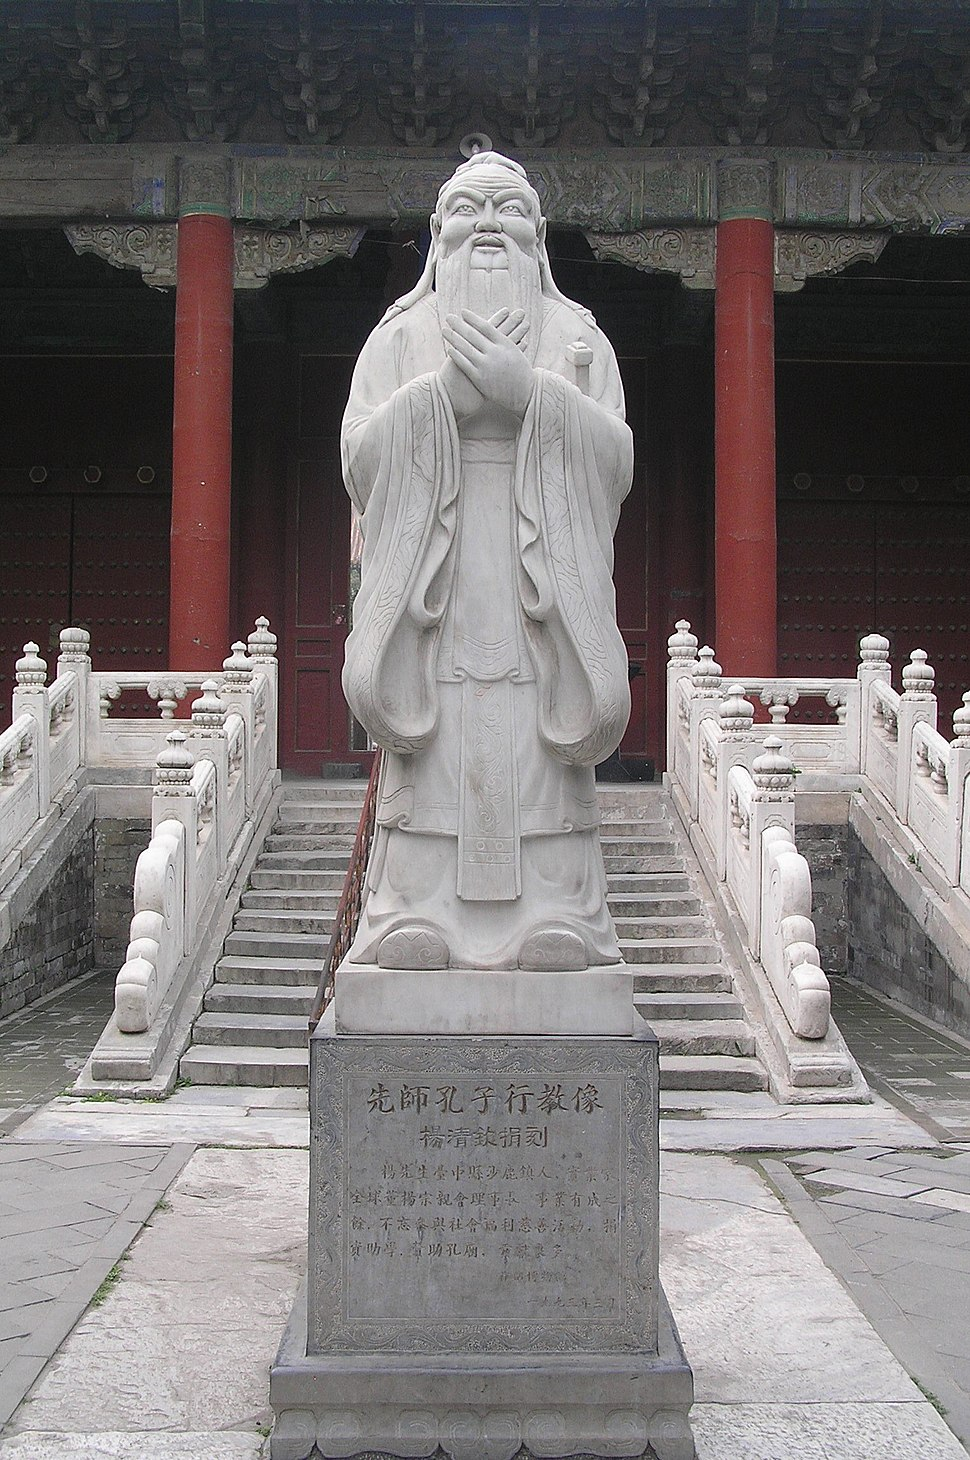 Confucius Statue at the Confucius Temple